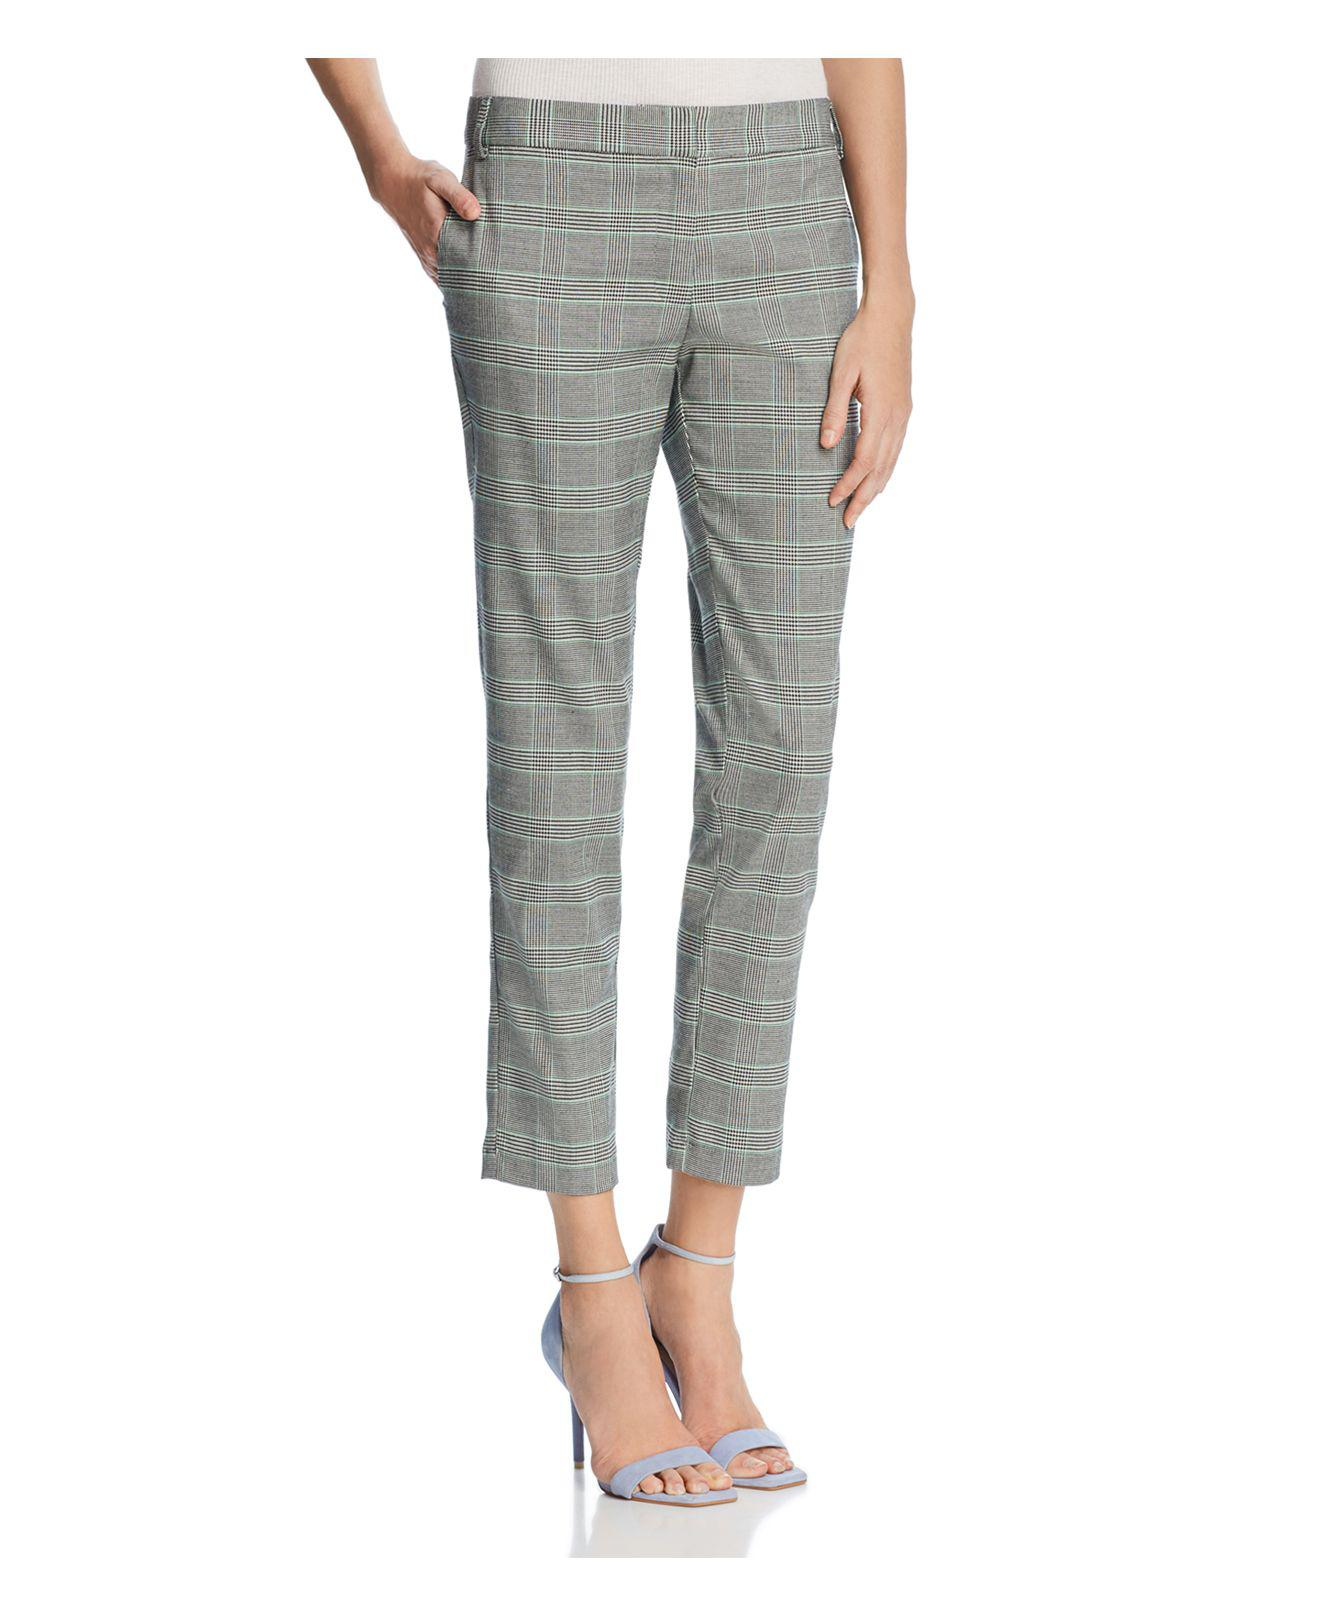 glen plaid cropped trousers - Grey Taylor LfhqSQABwO